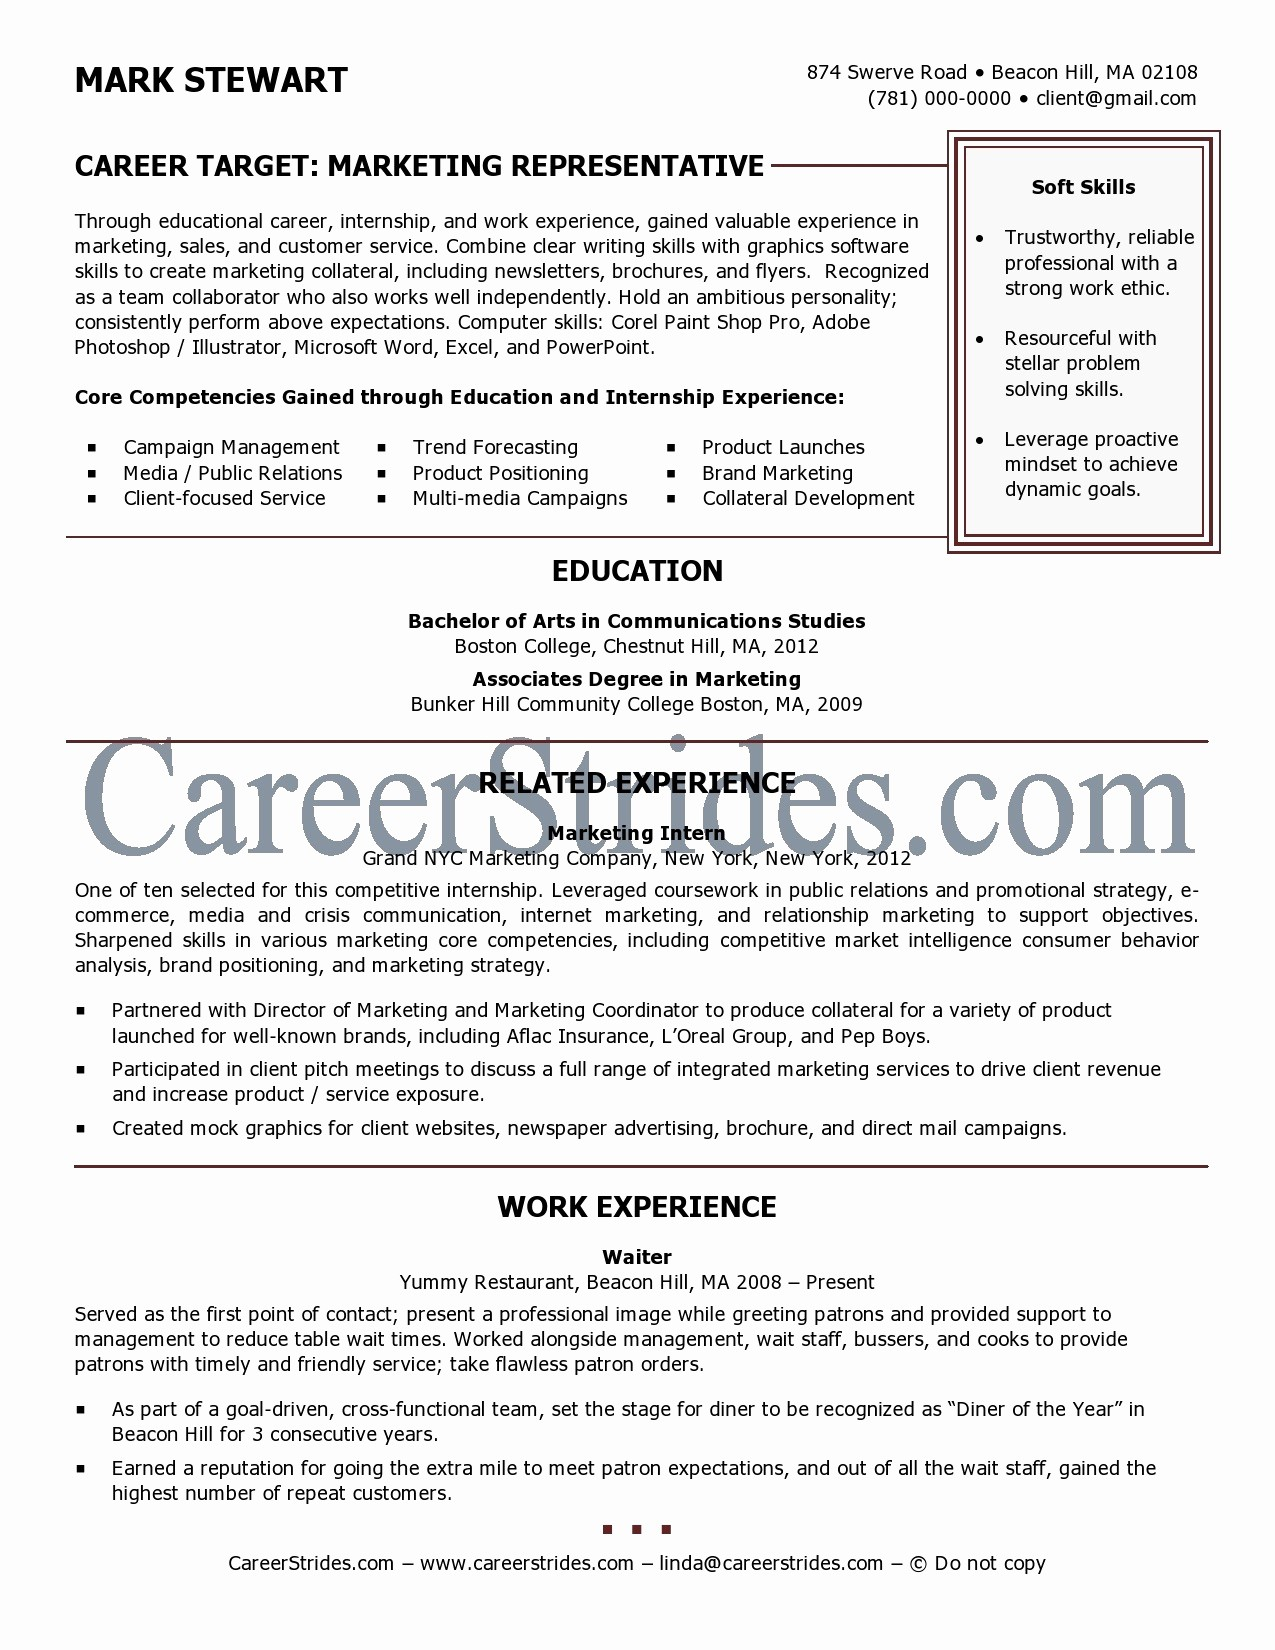 Resumes for Recent College Graduates Inspirational Review Resume Samples In A Wide Range Of Careers